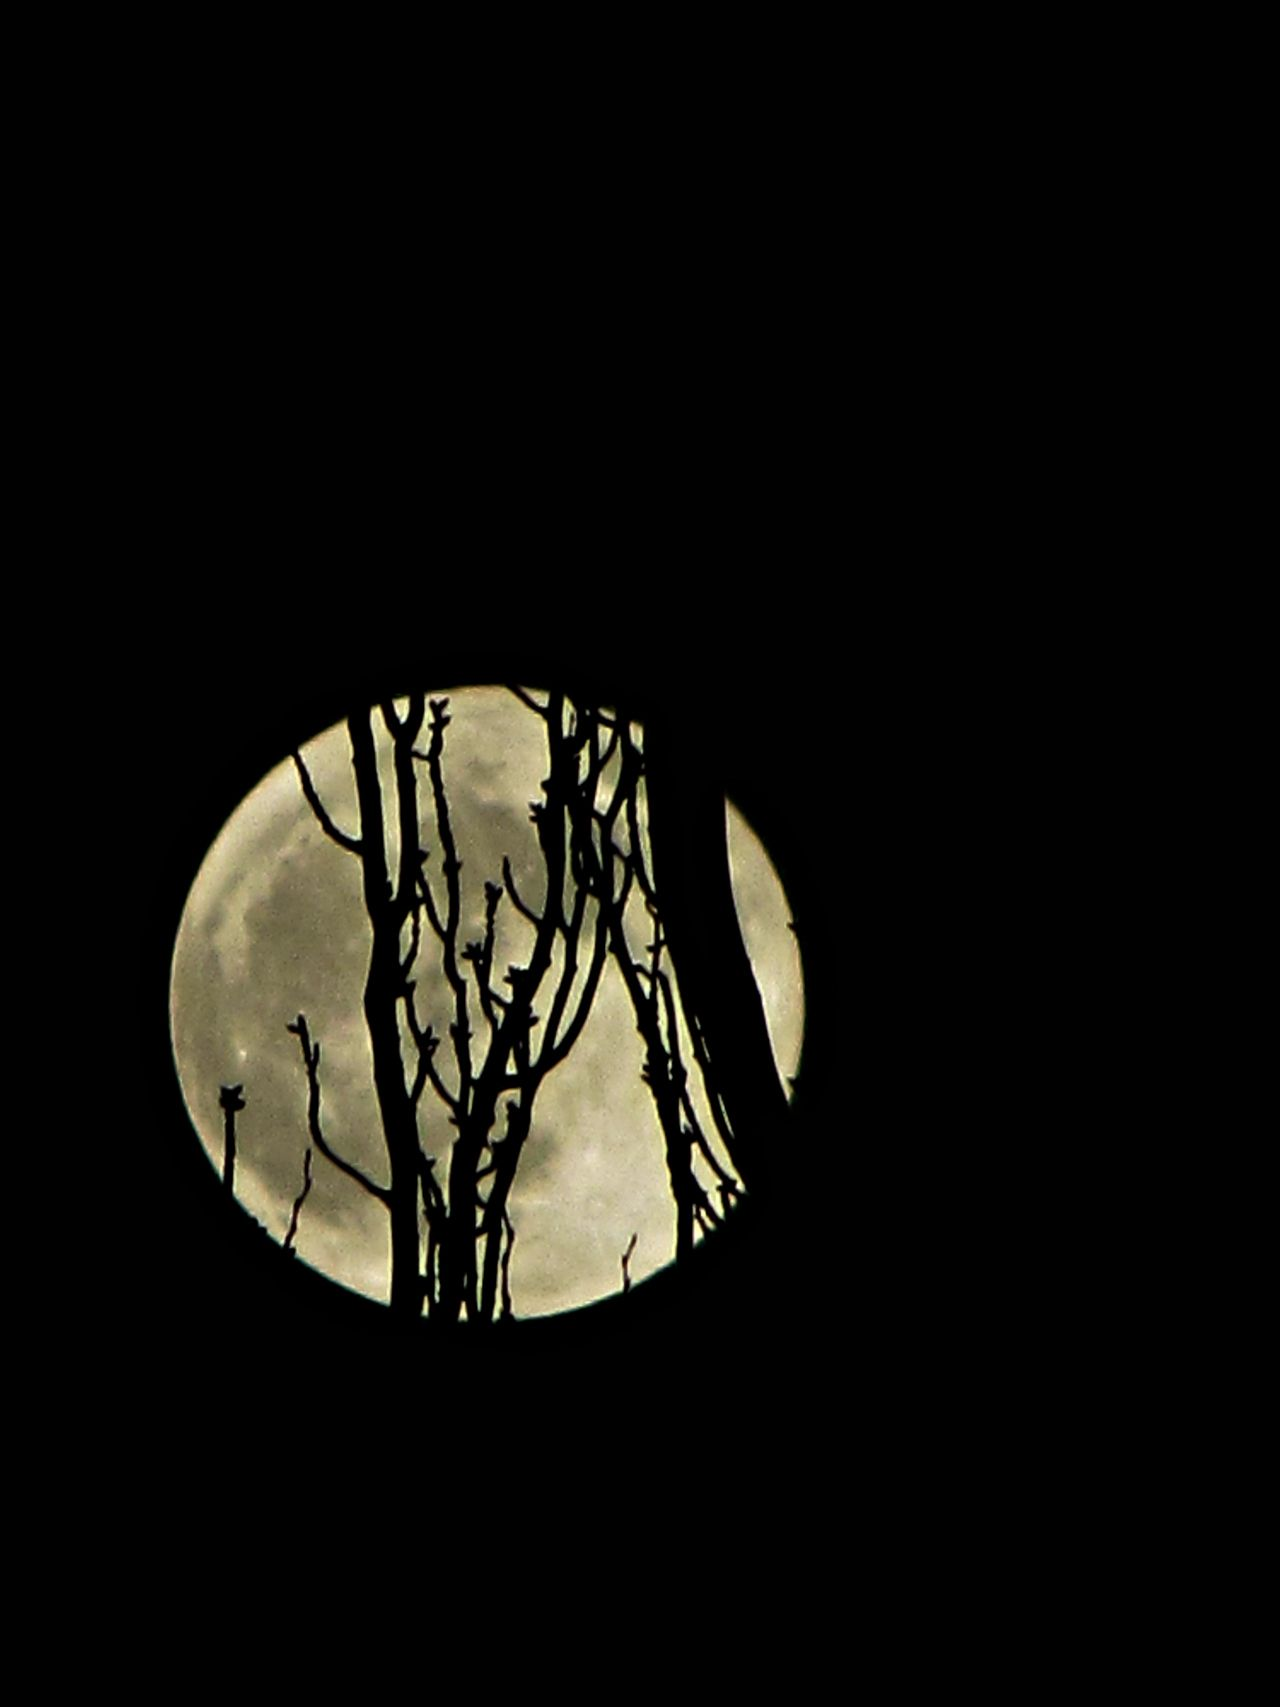 Full moon behind the trees.  (We´re looking at the same moon tho we´re miles apart) by Laura B. Fernández. S)